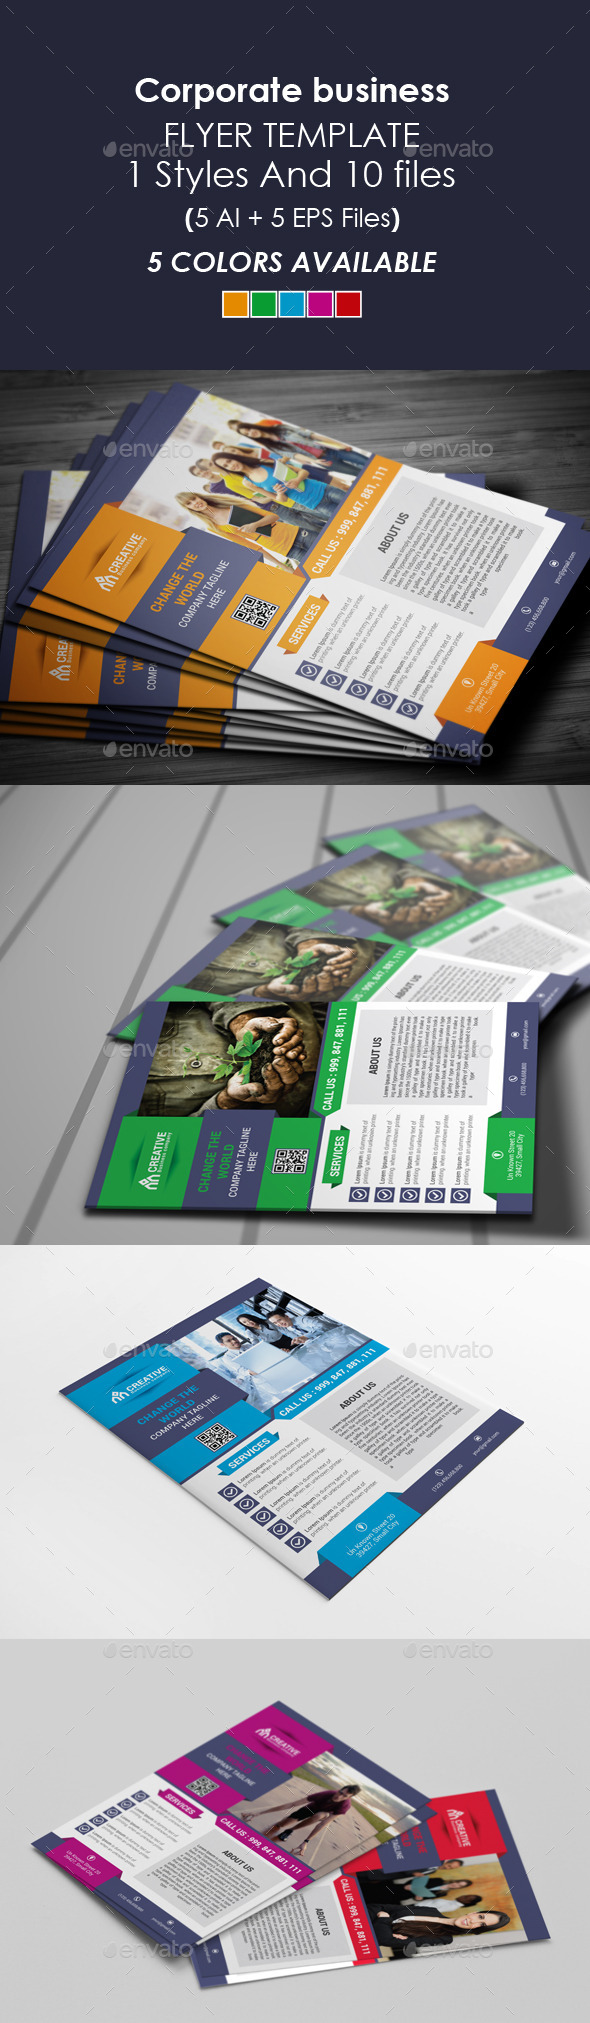 GraphicRiver Corporate Business Flyer Template 9412810